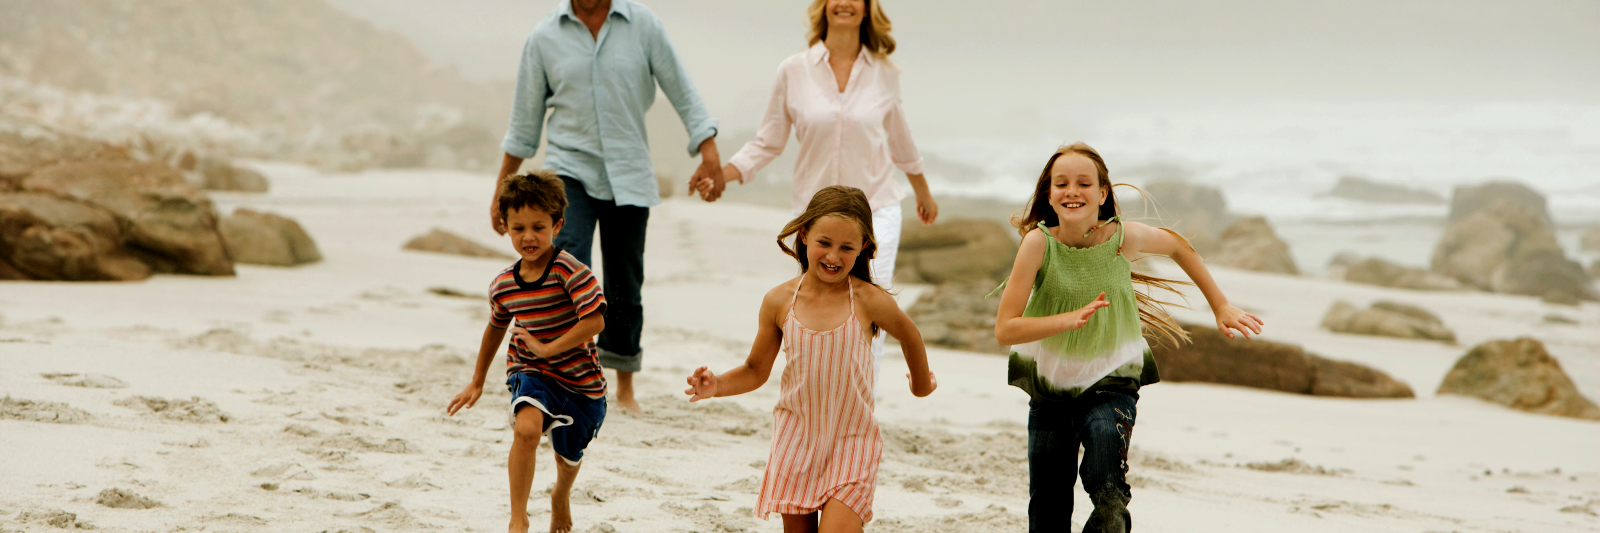 Mom dad and three kids running on beach